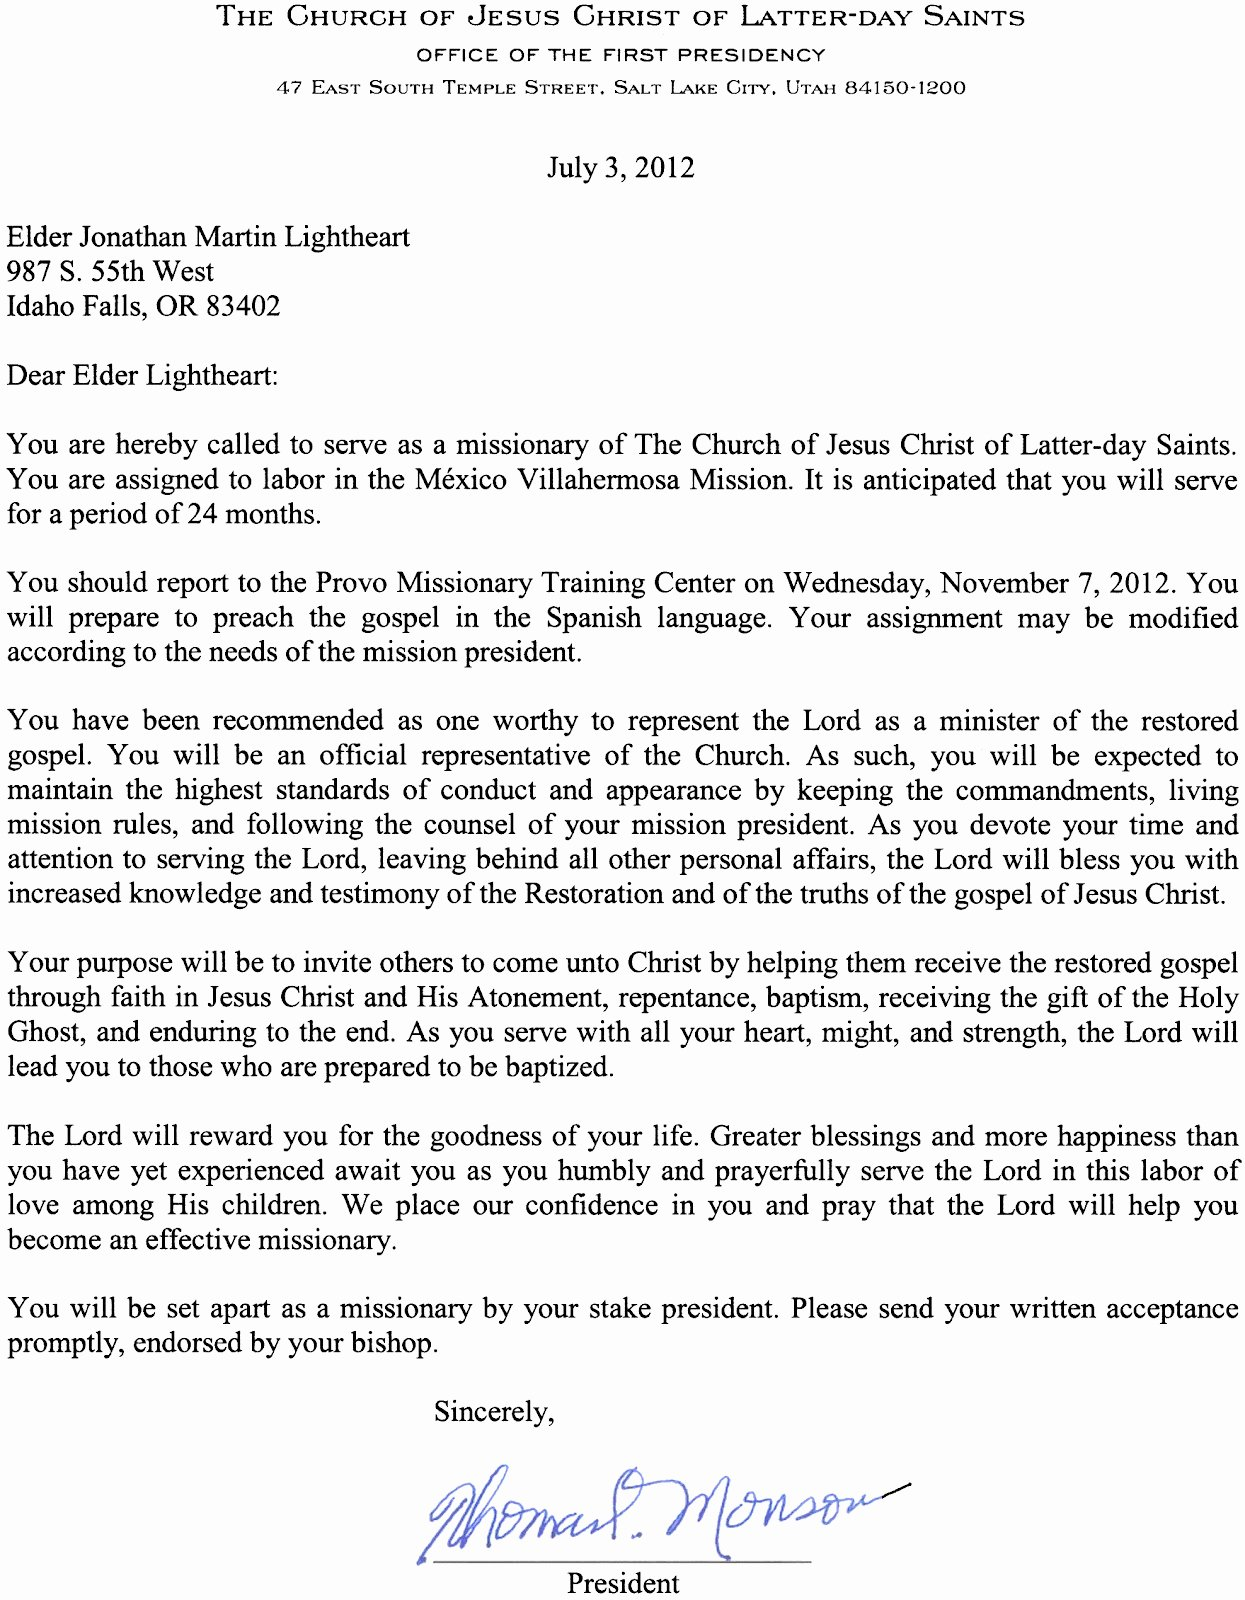 Support Letter Template for Missions Lovely Elder Jonathan Lightheart Mexico Villahermosa Mission